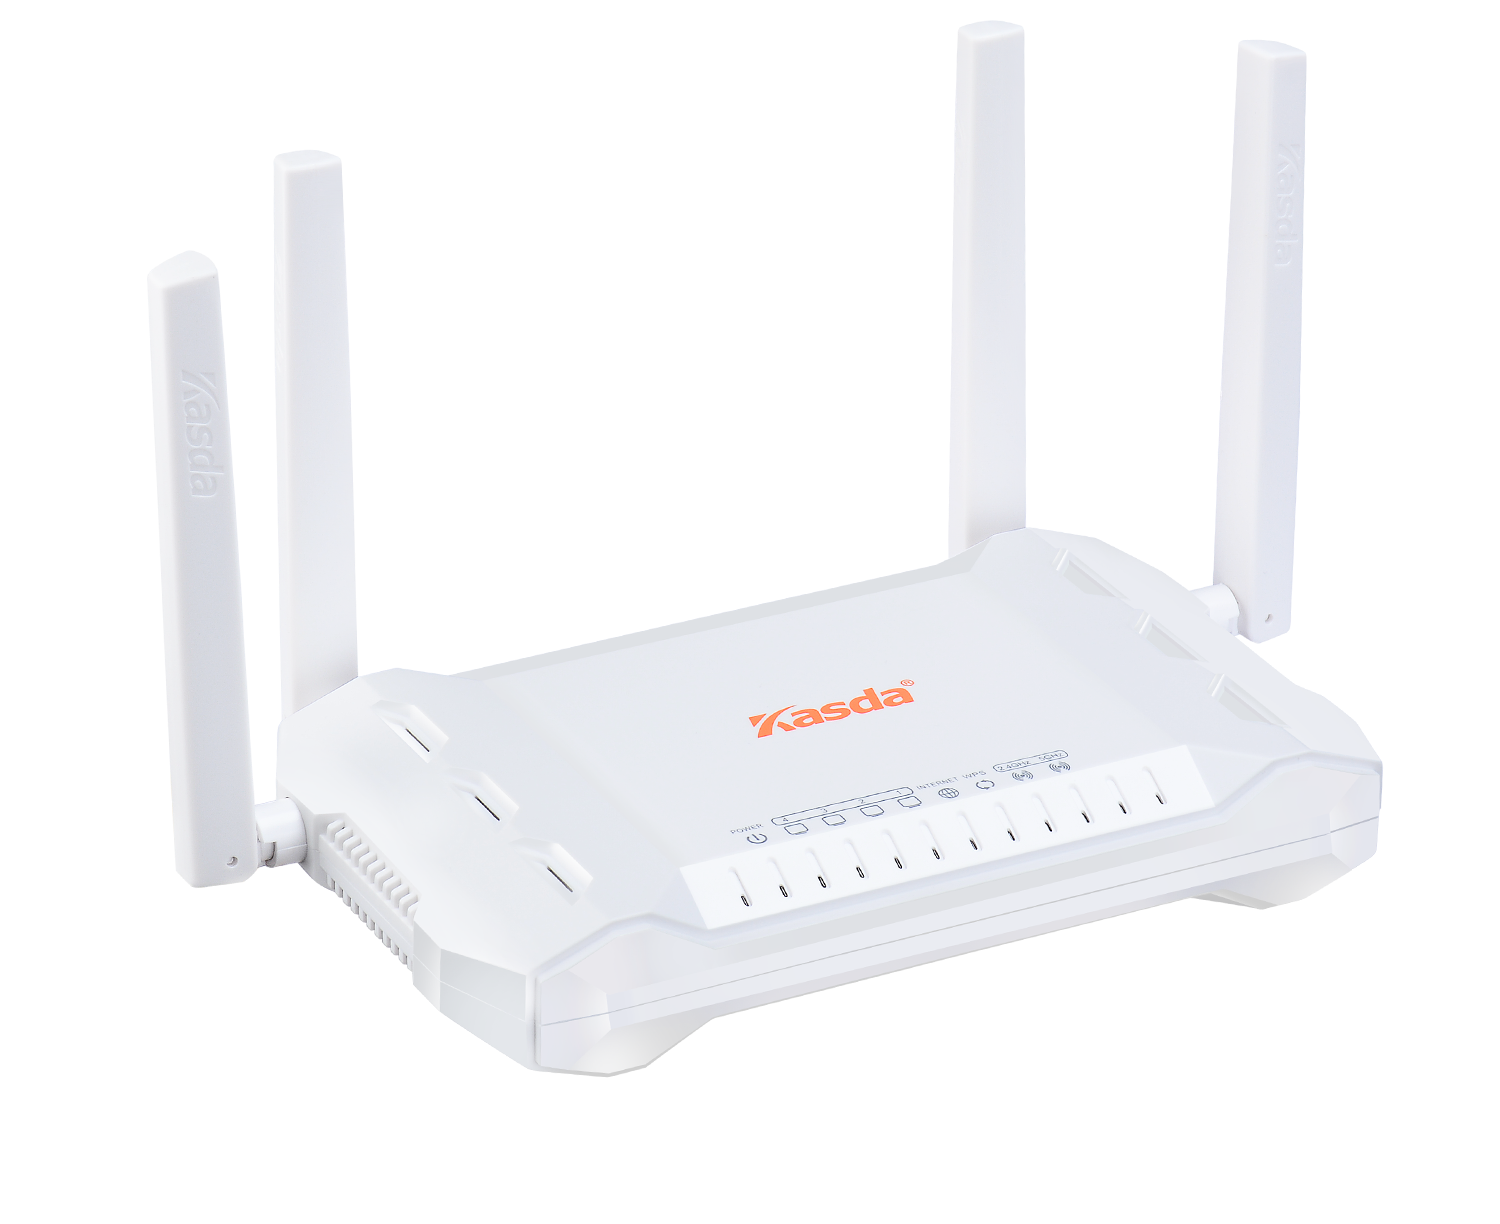 WIFI KASDA ROUTER 11AC 1200MBPS 4 PUERTOS REPEATER